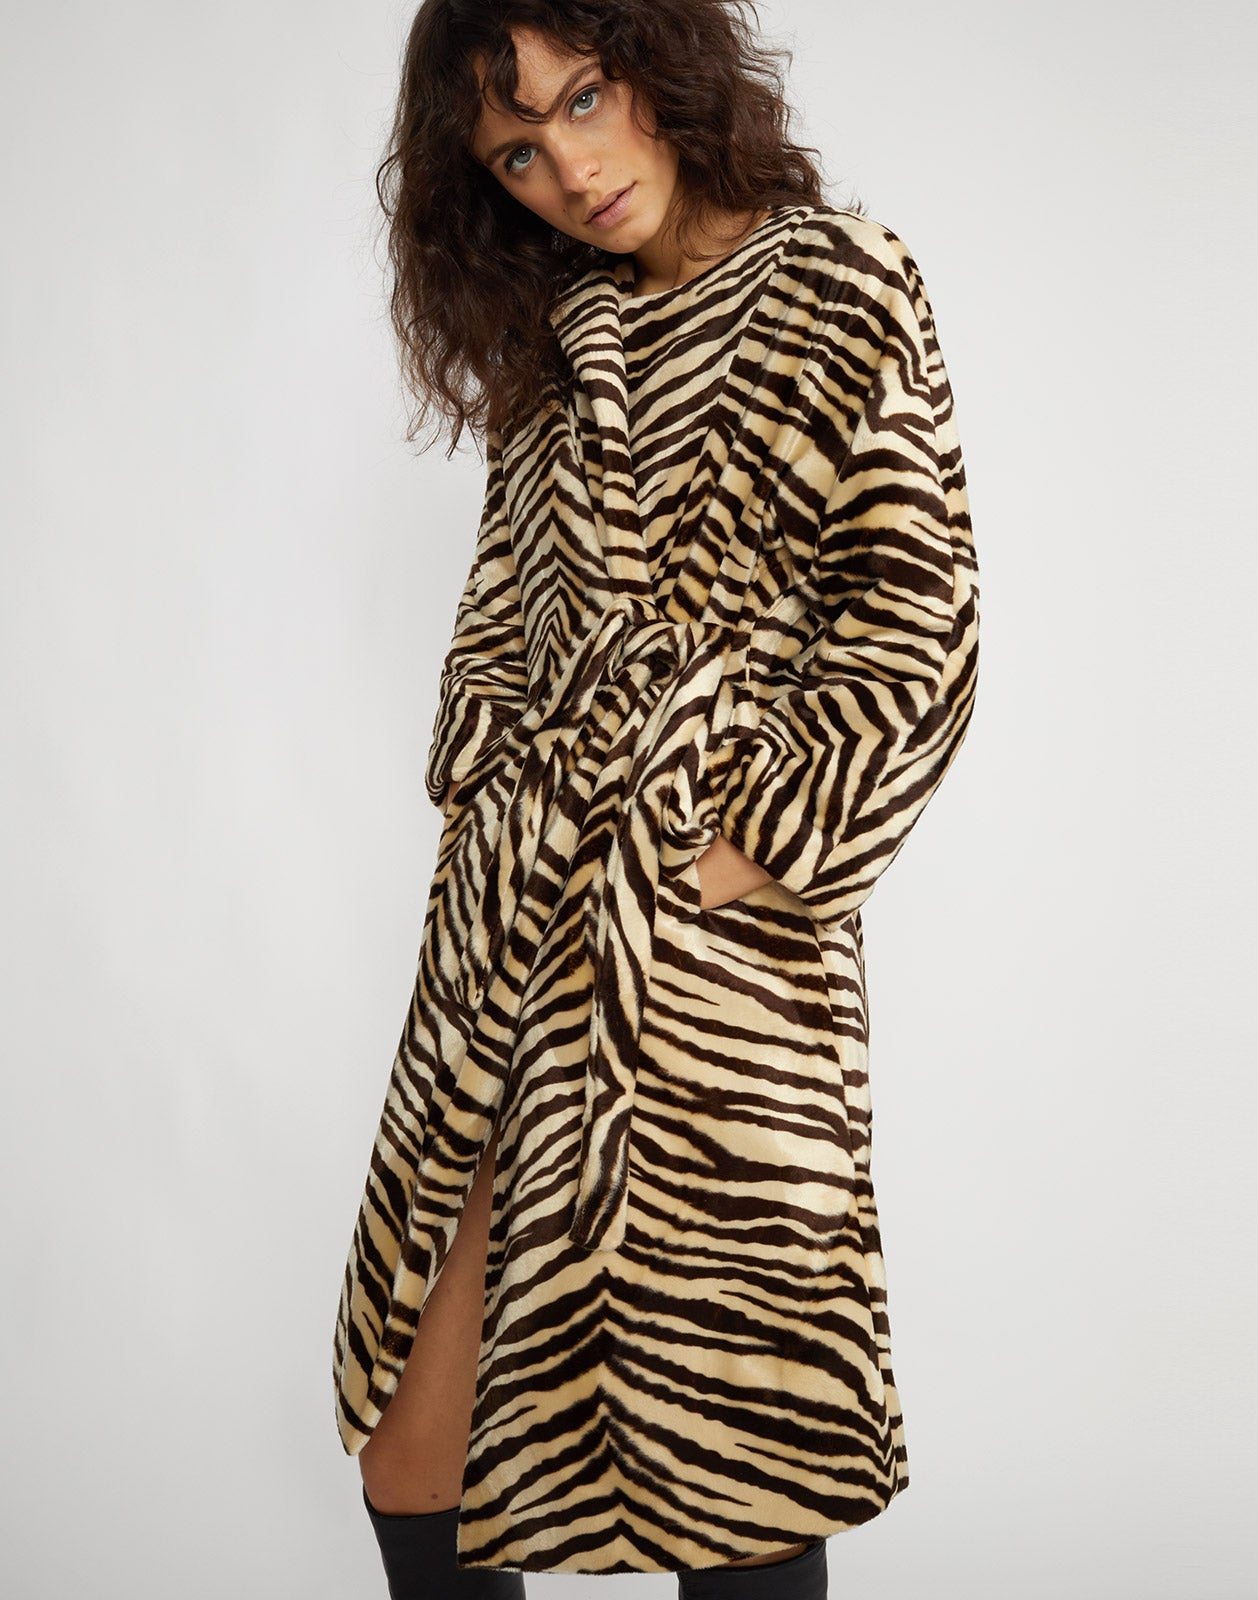 Close front view of the zebra print faux fur coat.